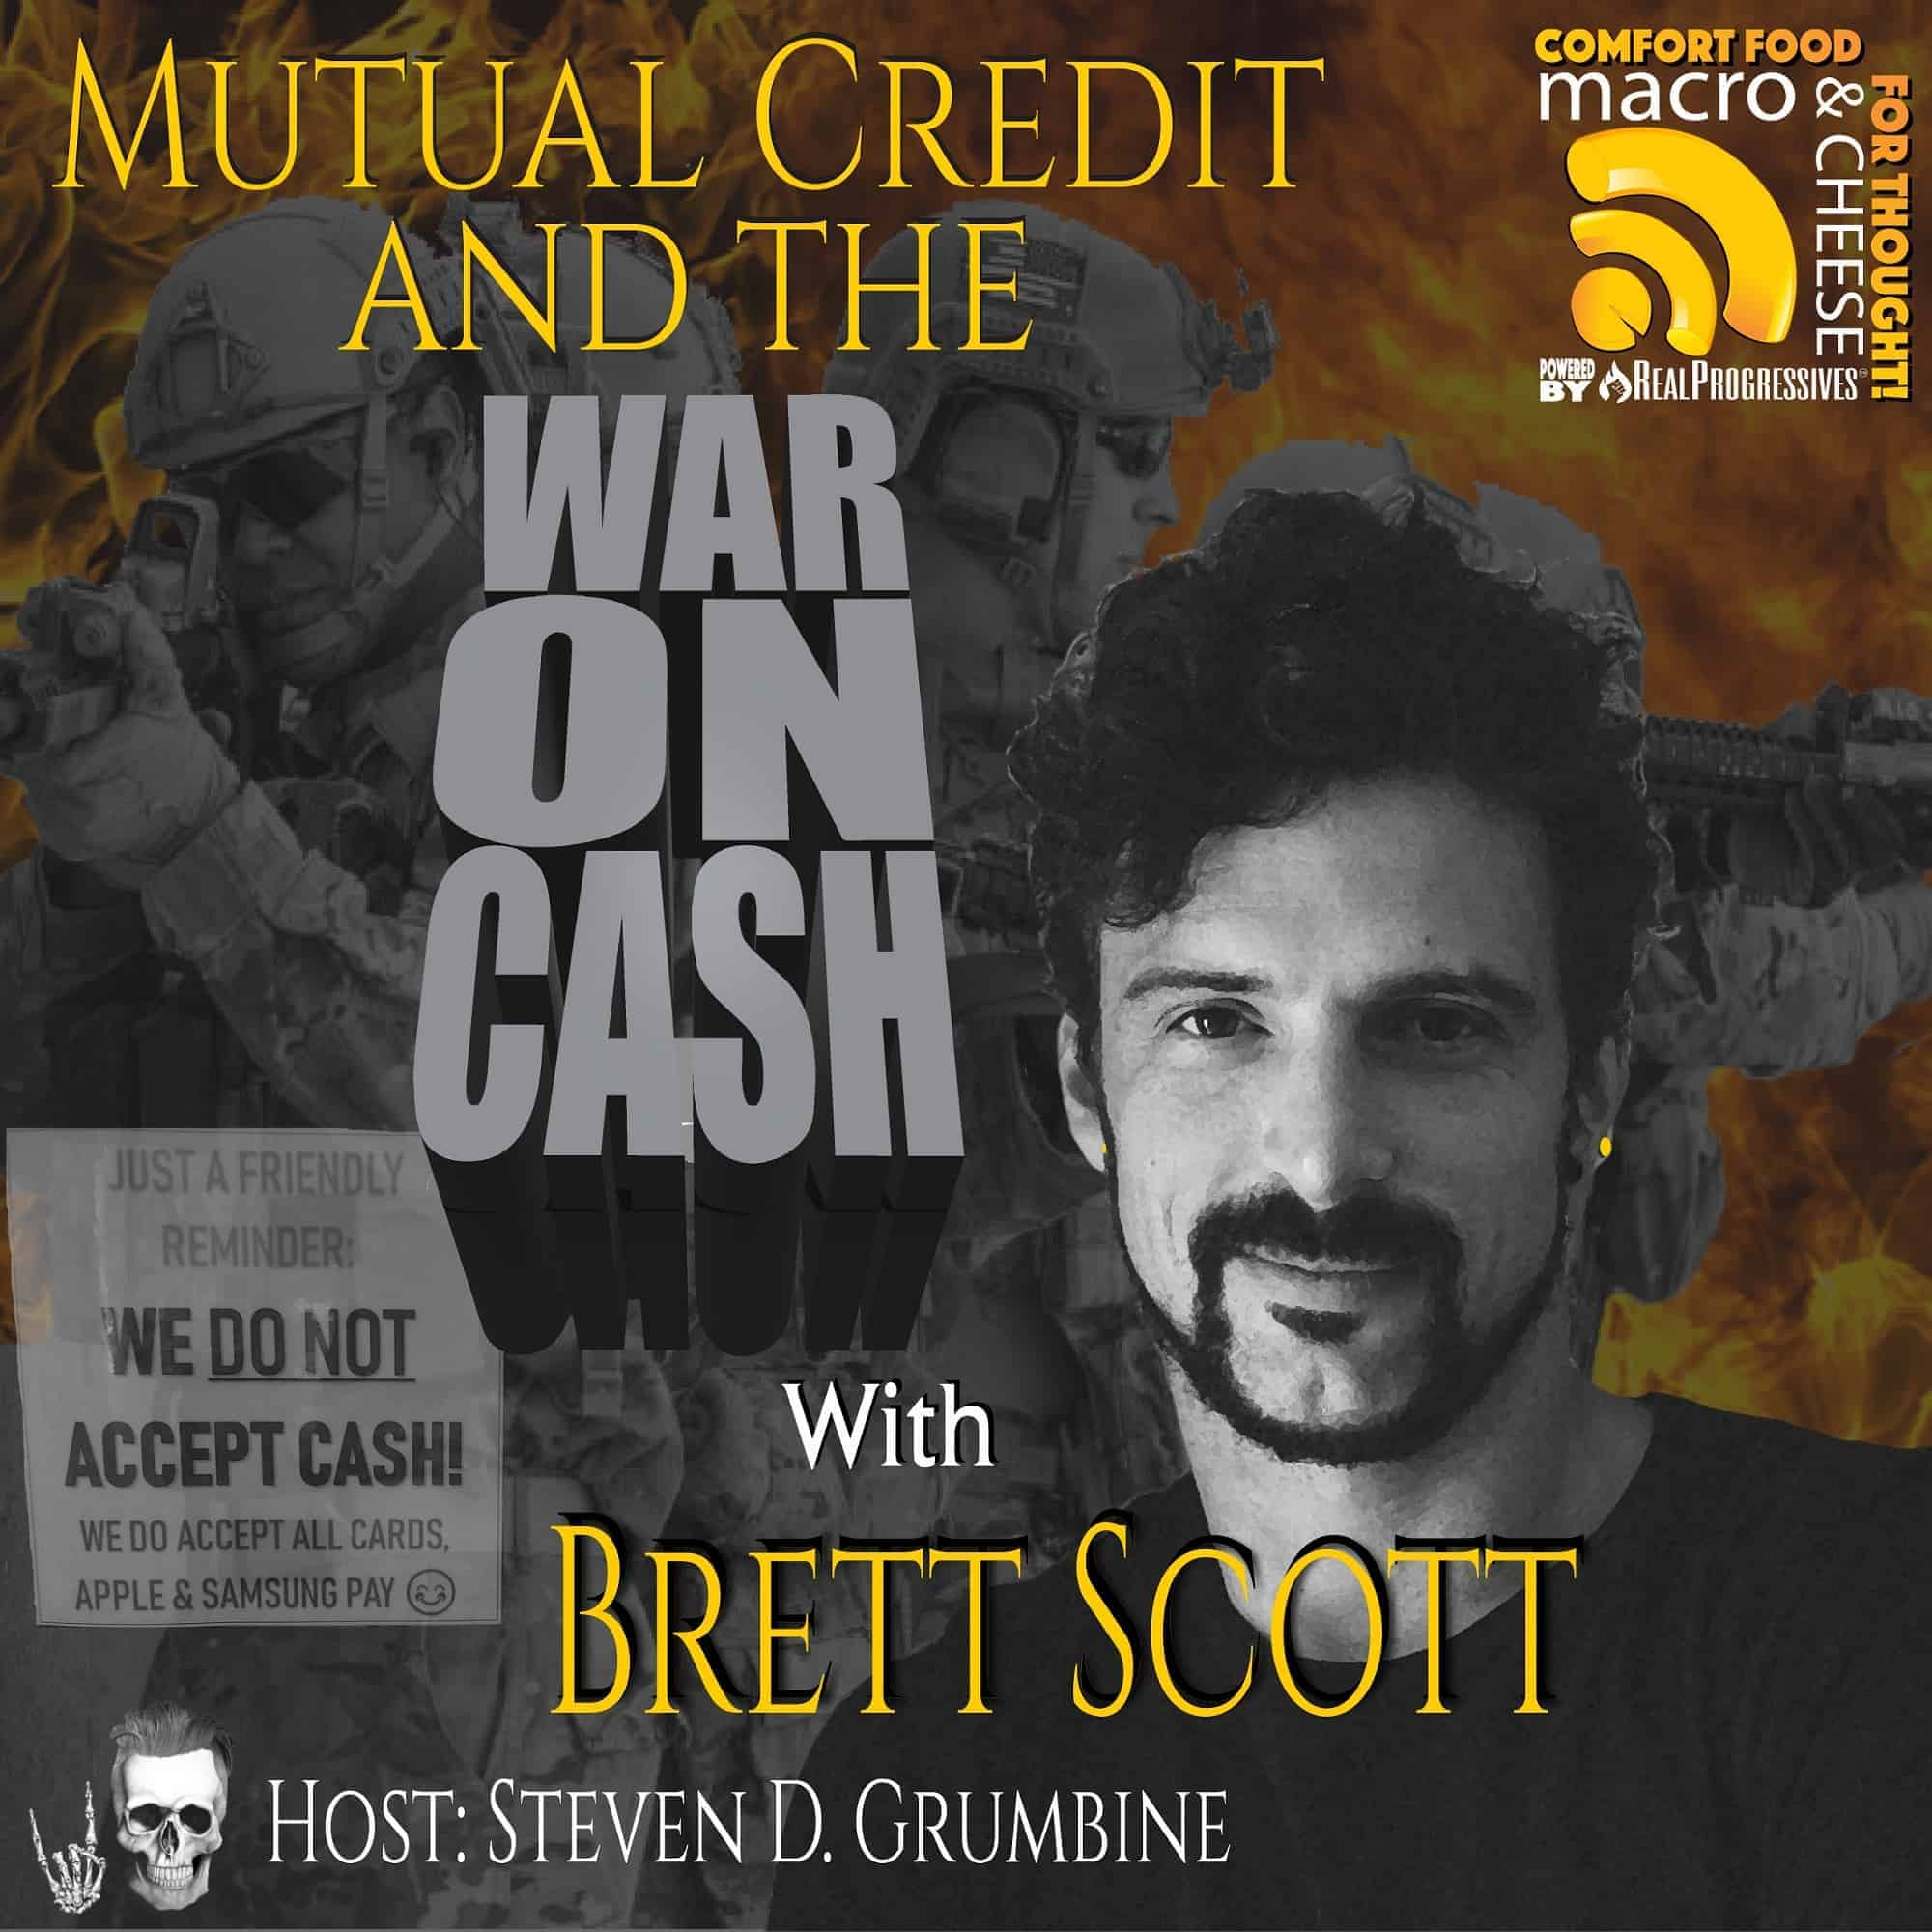 Episode 83 – Mutual Credit and the War on Cash with Brett Scott